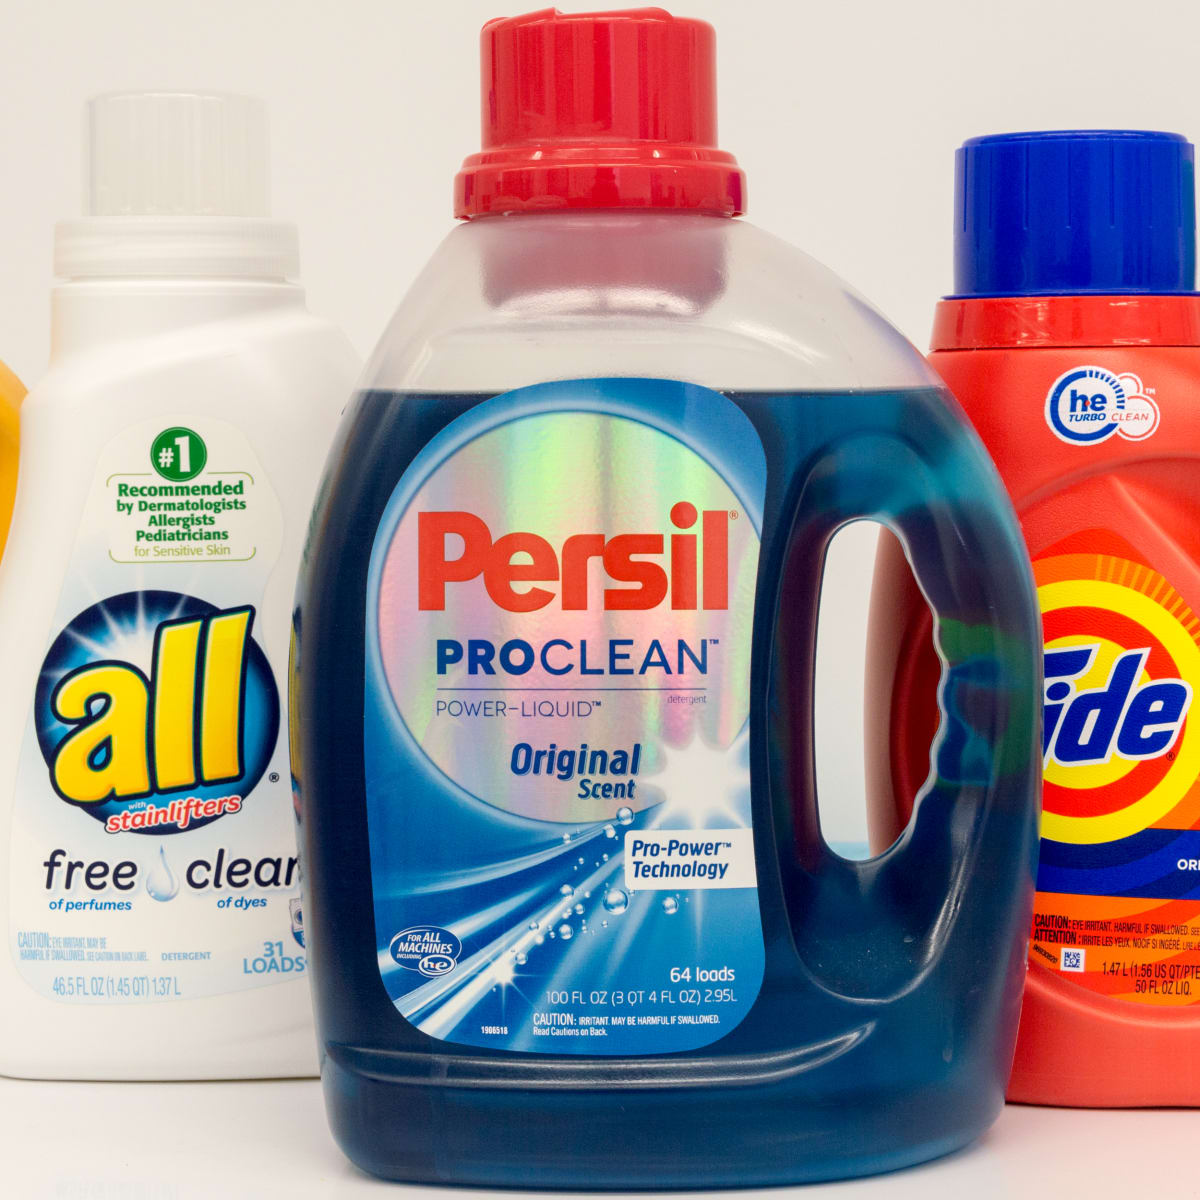 Best Laundry Detergent 2019 The Best Liquid Laundry Detergents of 2019   Reviewed Laundry